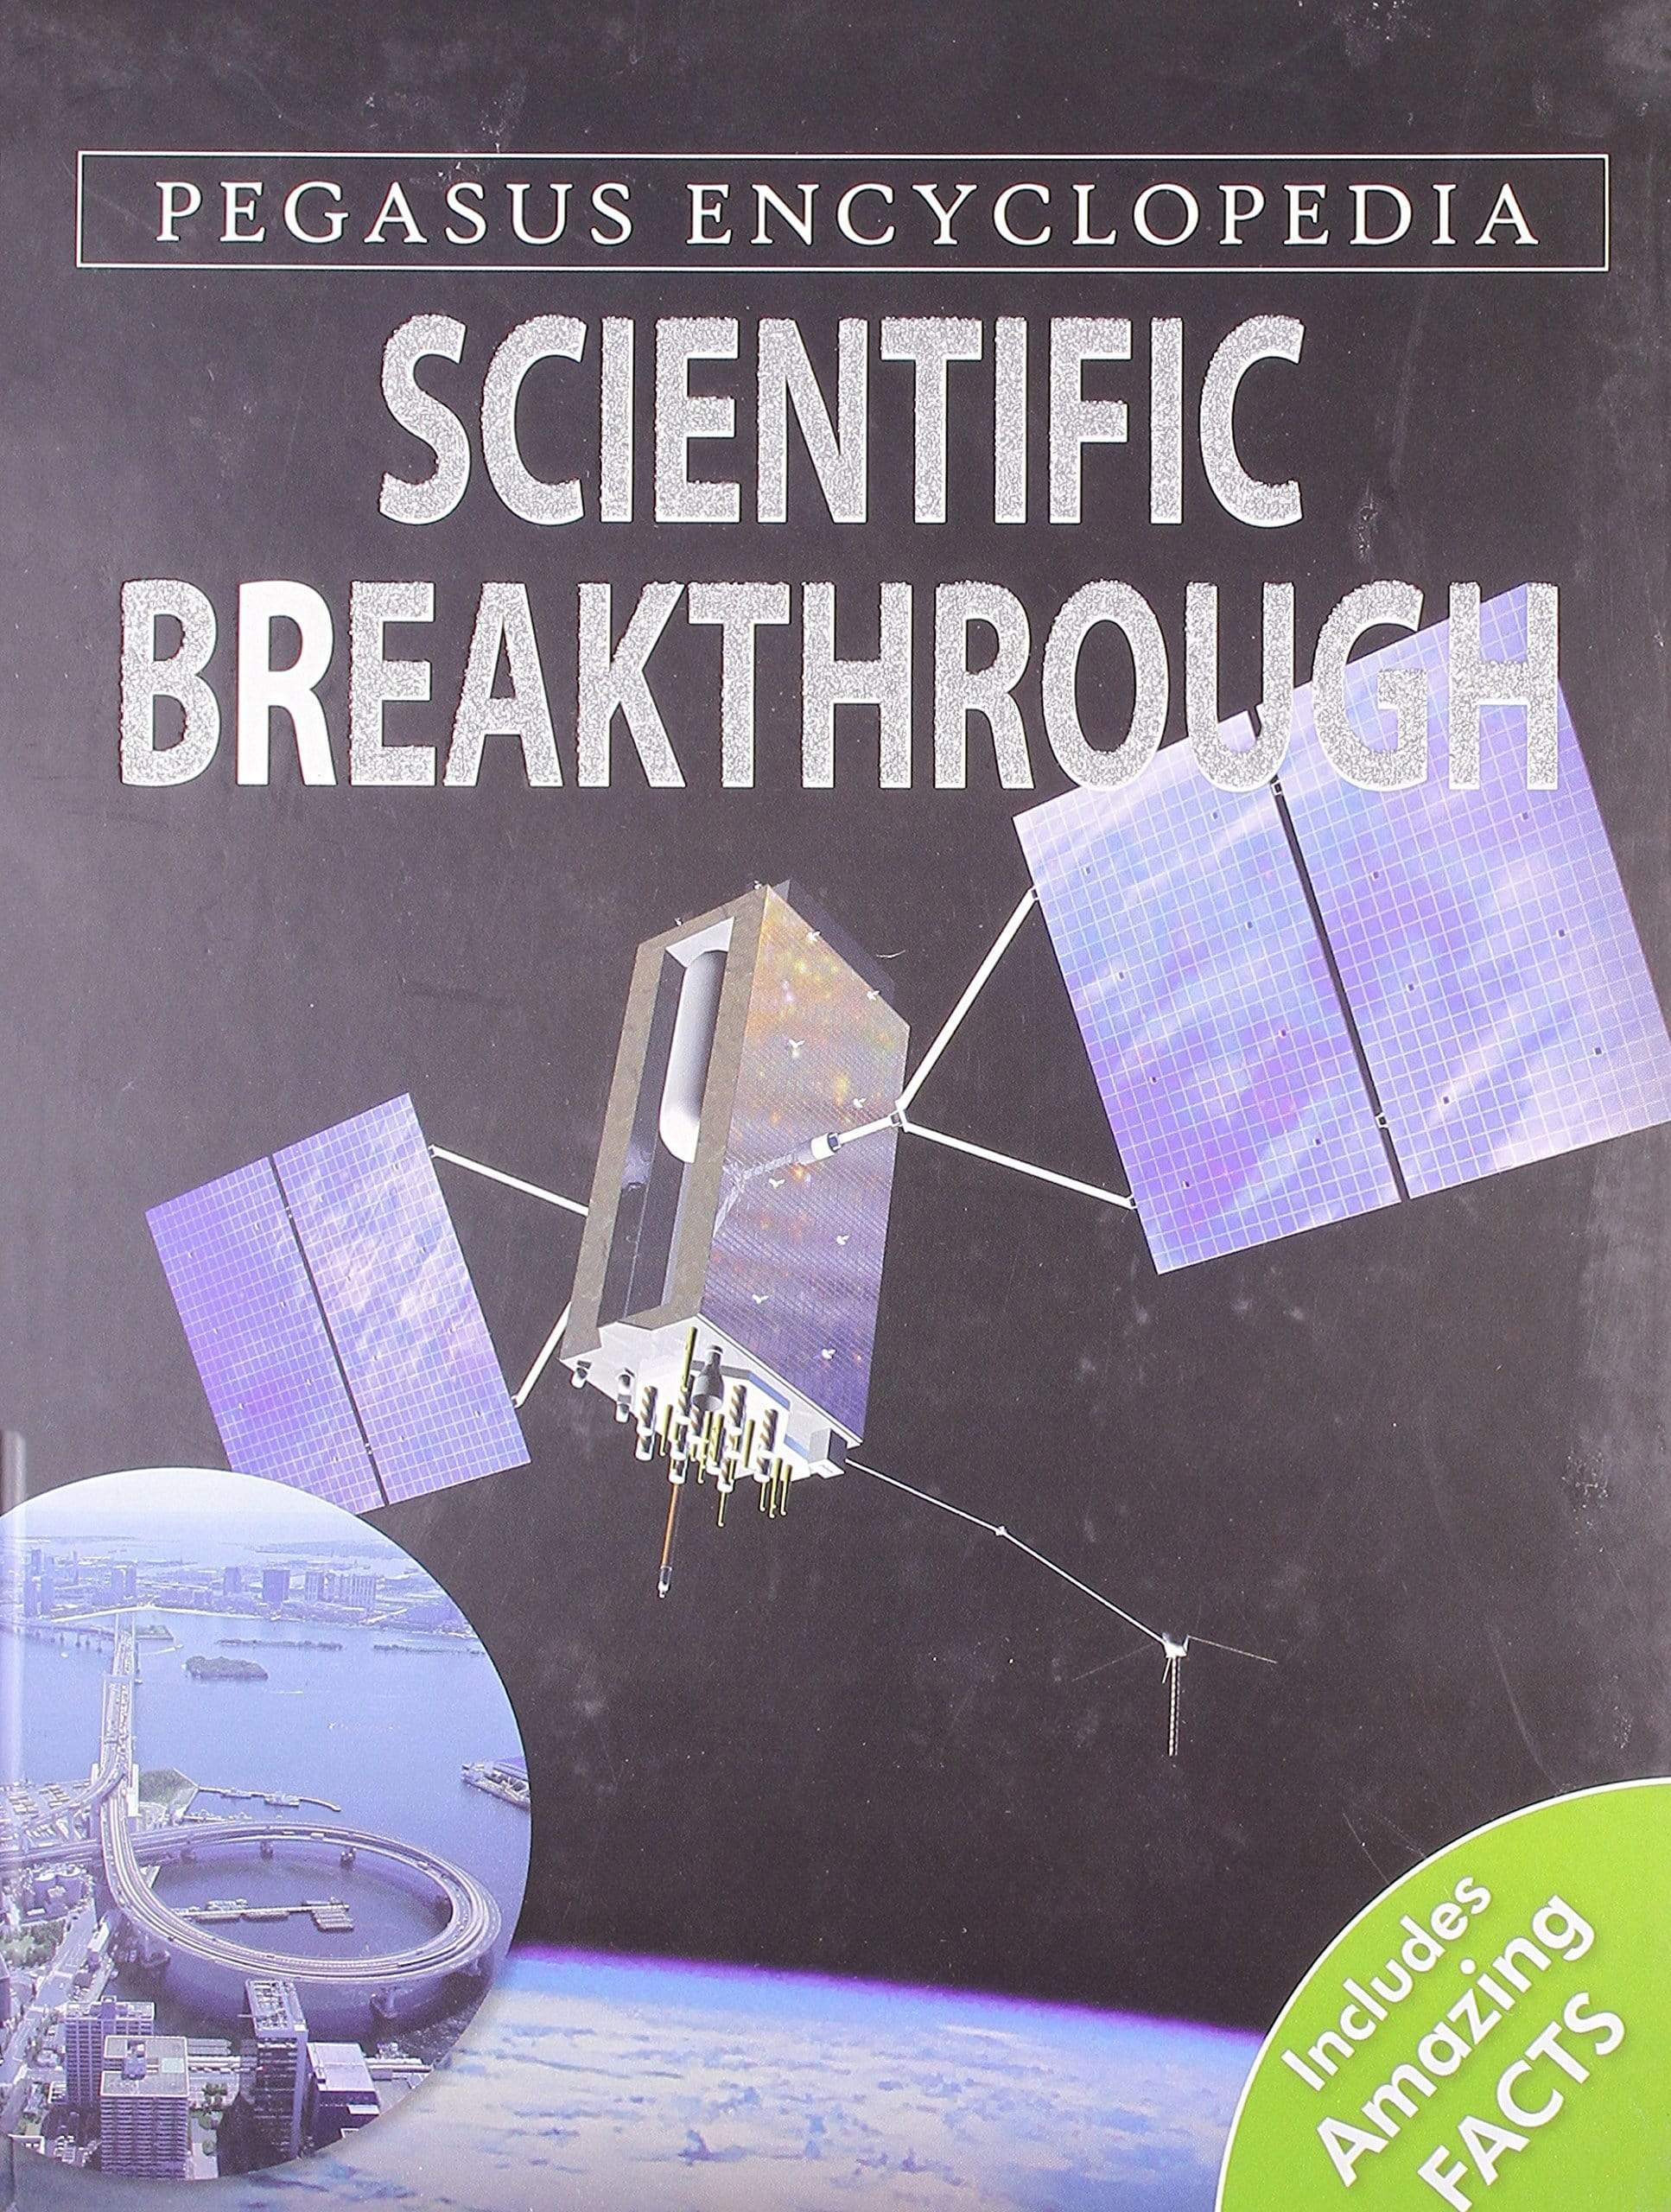 Scientfic Breakthrough: 1 (Discoveries and Inventions)